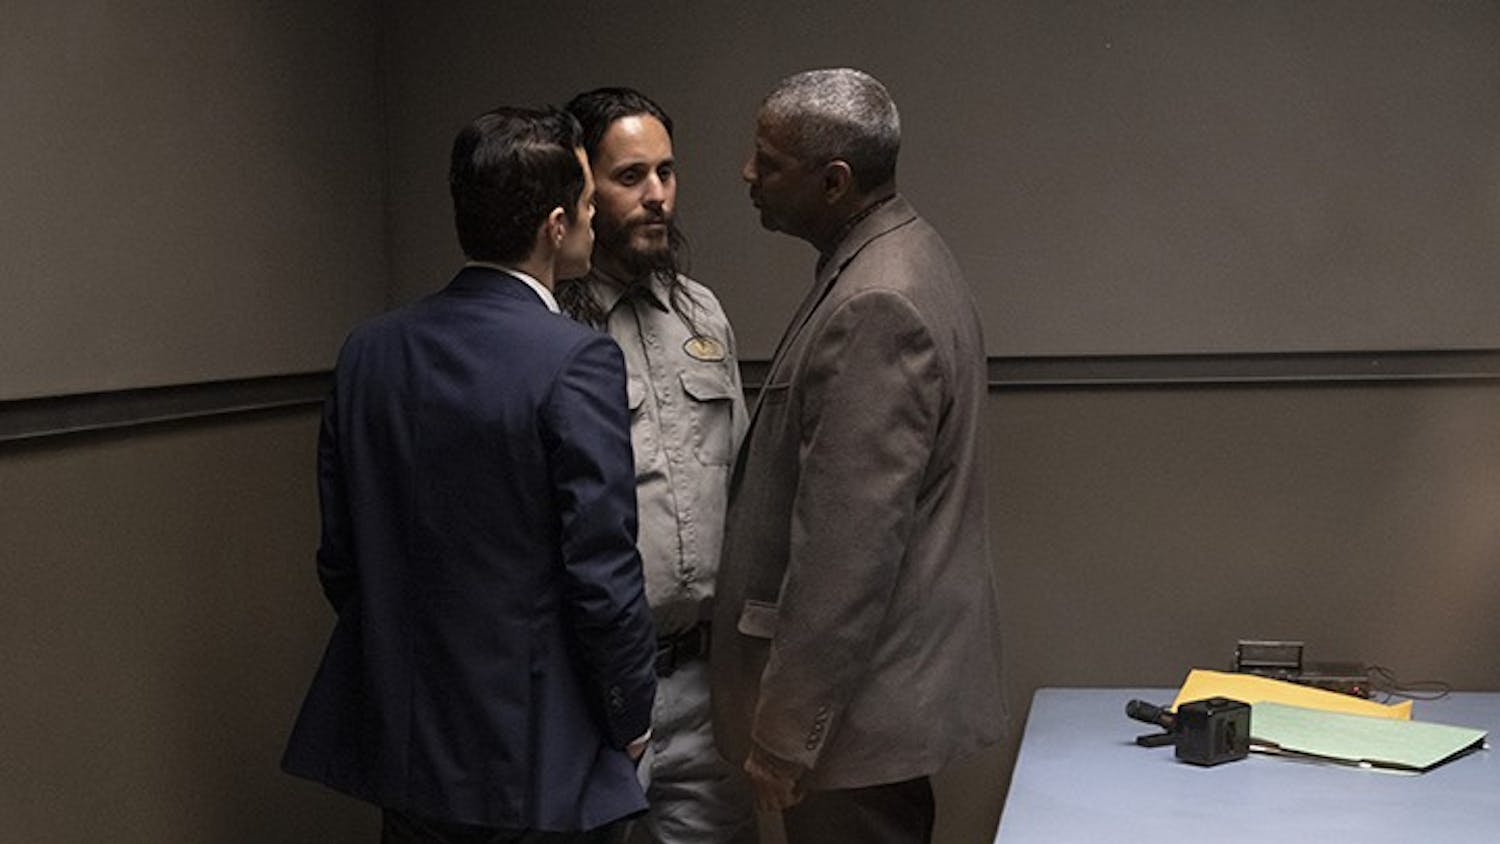 """Rami Malek, left, Jared Leto, center, and Denzel Washington talk in a scene from """"The Little Things""""."""